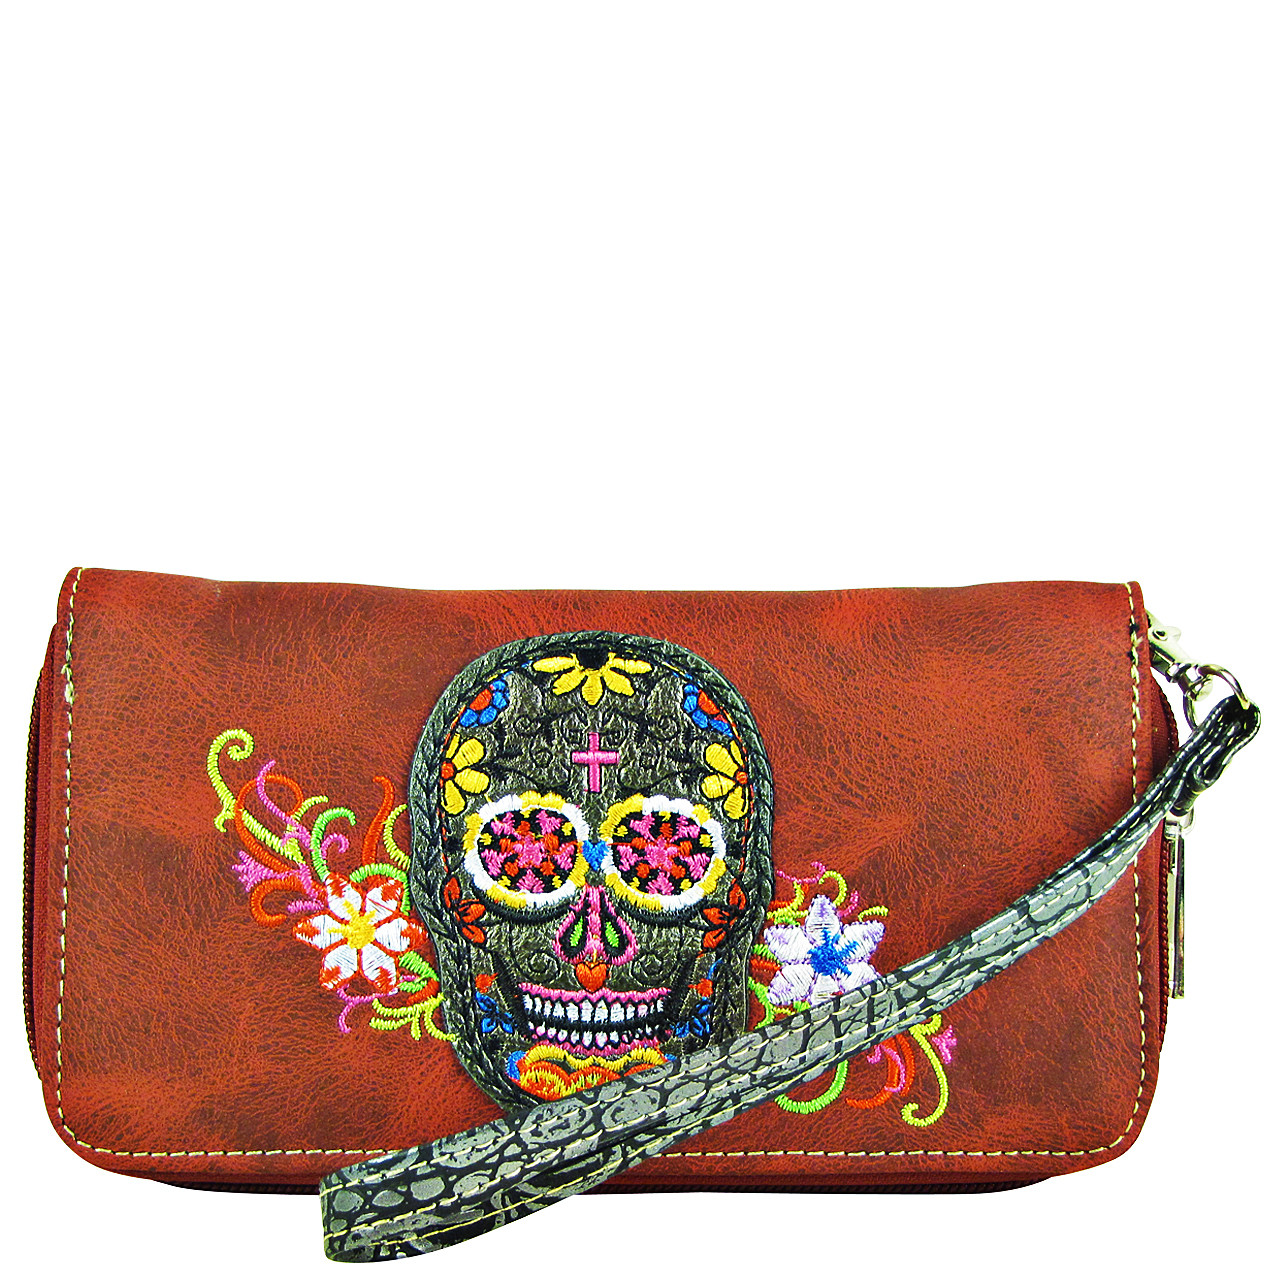 RED SKULL WITH FLOWER BACKGROUND LOOK ZIPPER WALLET CB3-1213RED